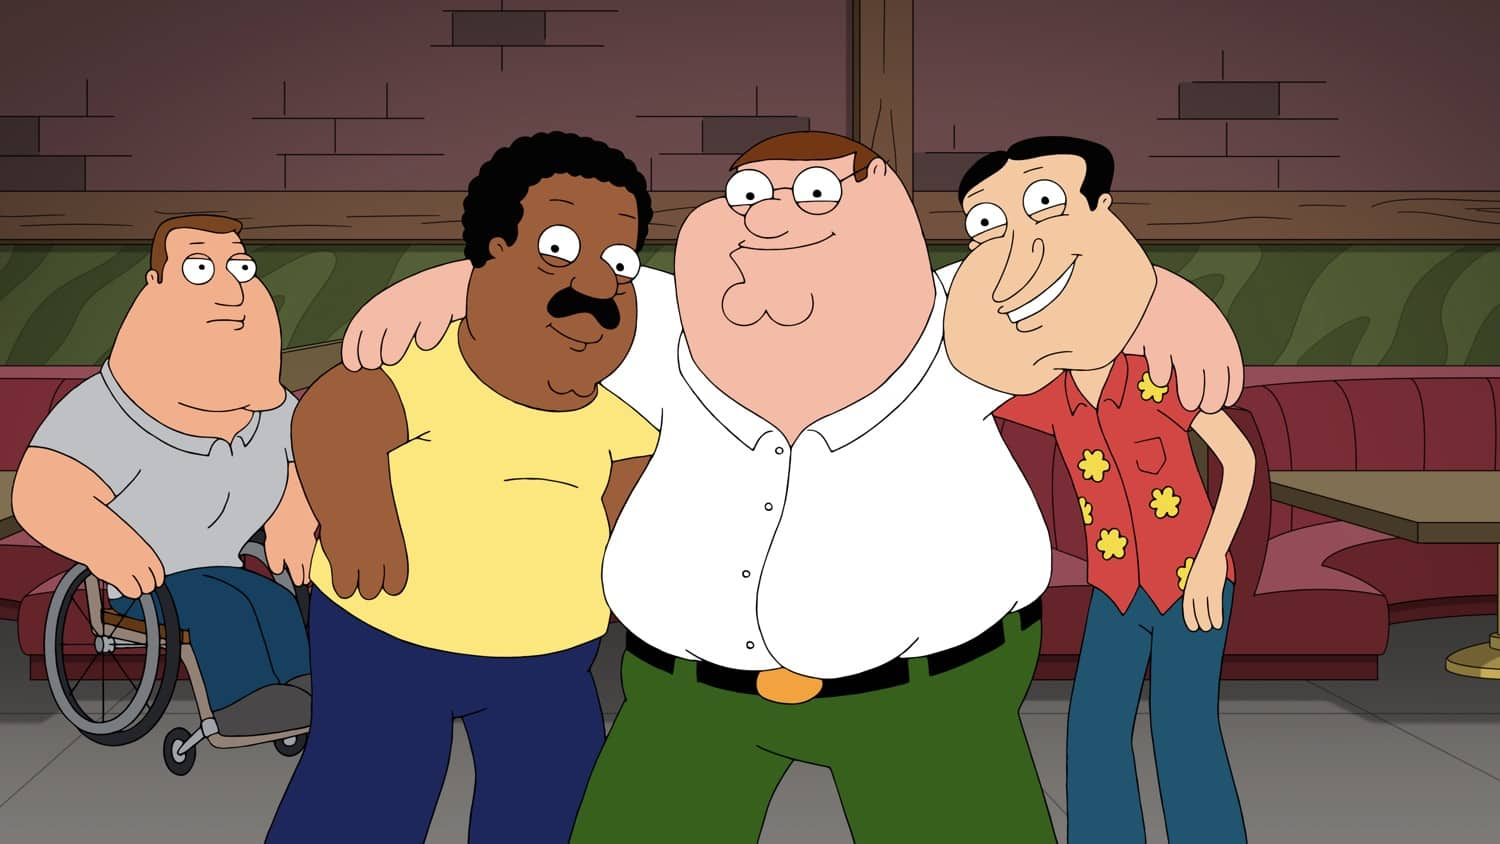 FAMILY GUY Season 19 Episode 14 : Stewie gets a mail order bride from Ukraine and experiences domestic life. Meanwhile, Peter and Chris become addicted to free hotel breakfast buffets in the ìThe Marrying Kindî episode of FAMILY GUY airing Sunday, March 14 (9:30-10:00 PM ET/PT) on FOX. FAMILY GUY © 2021 by 20th Television.